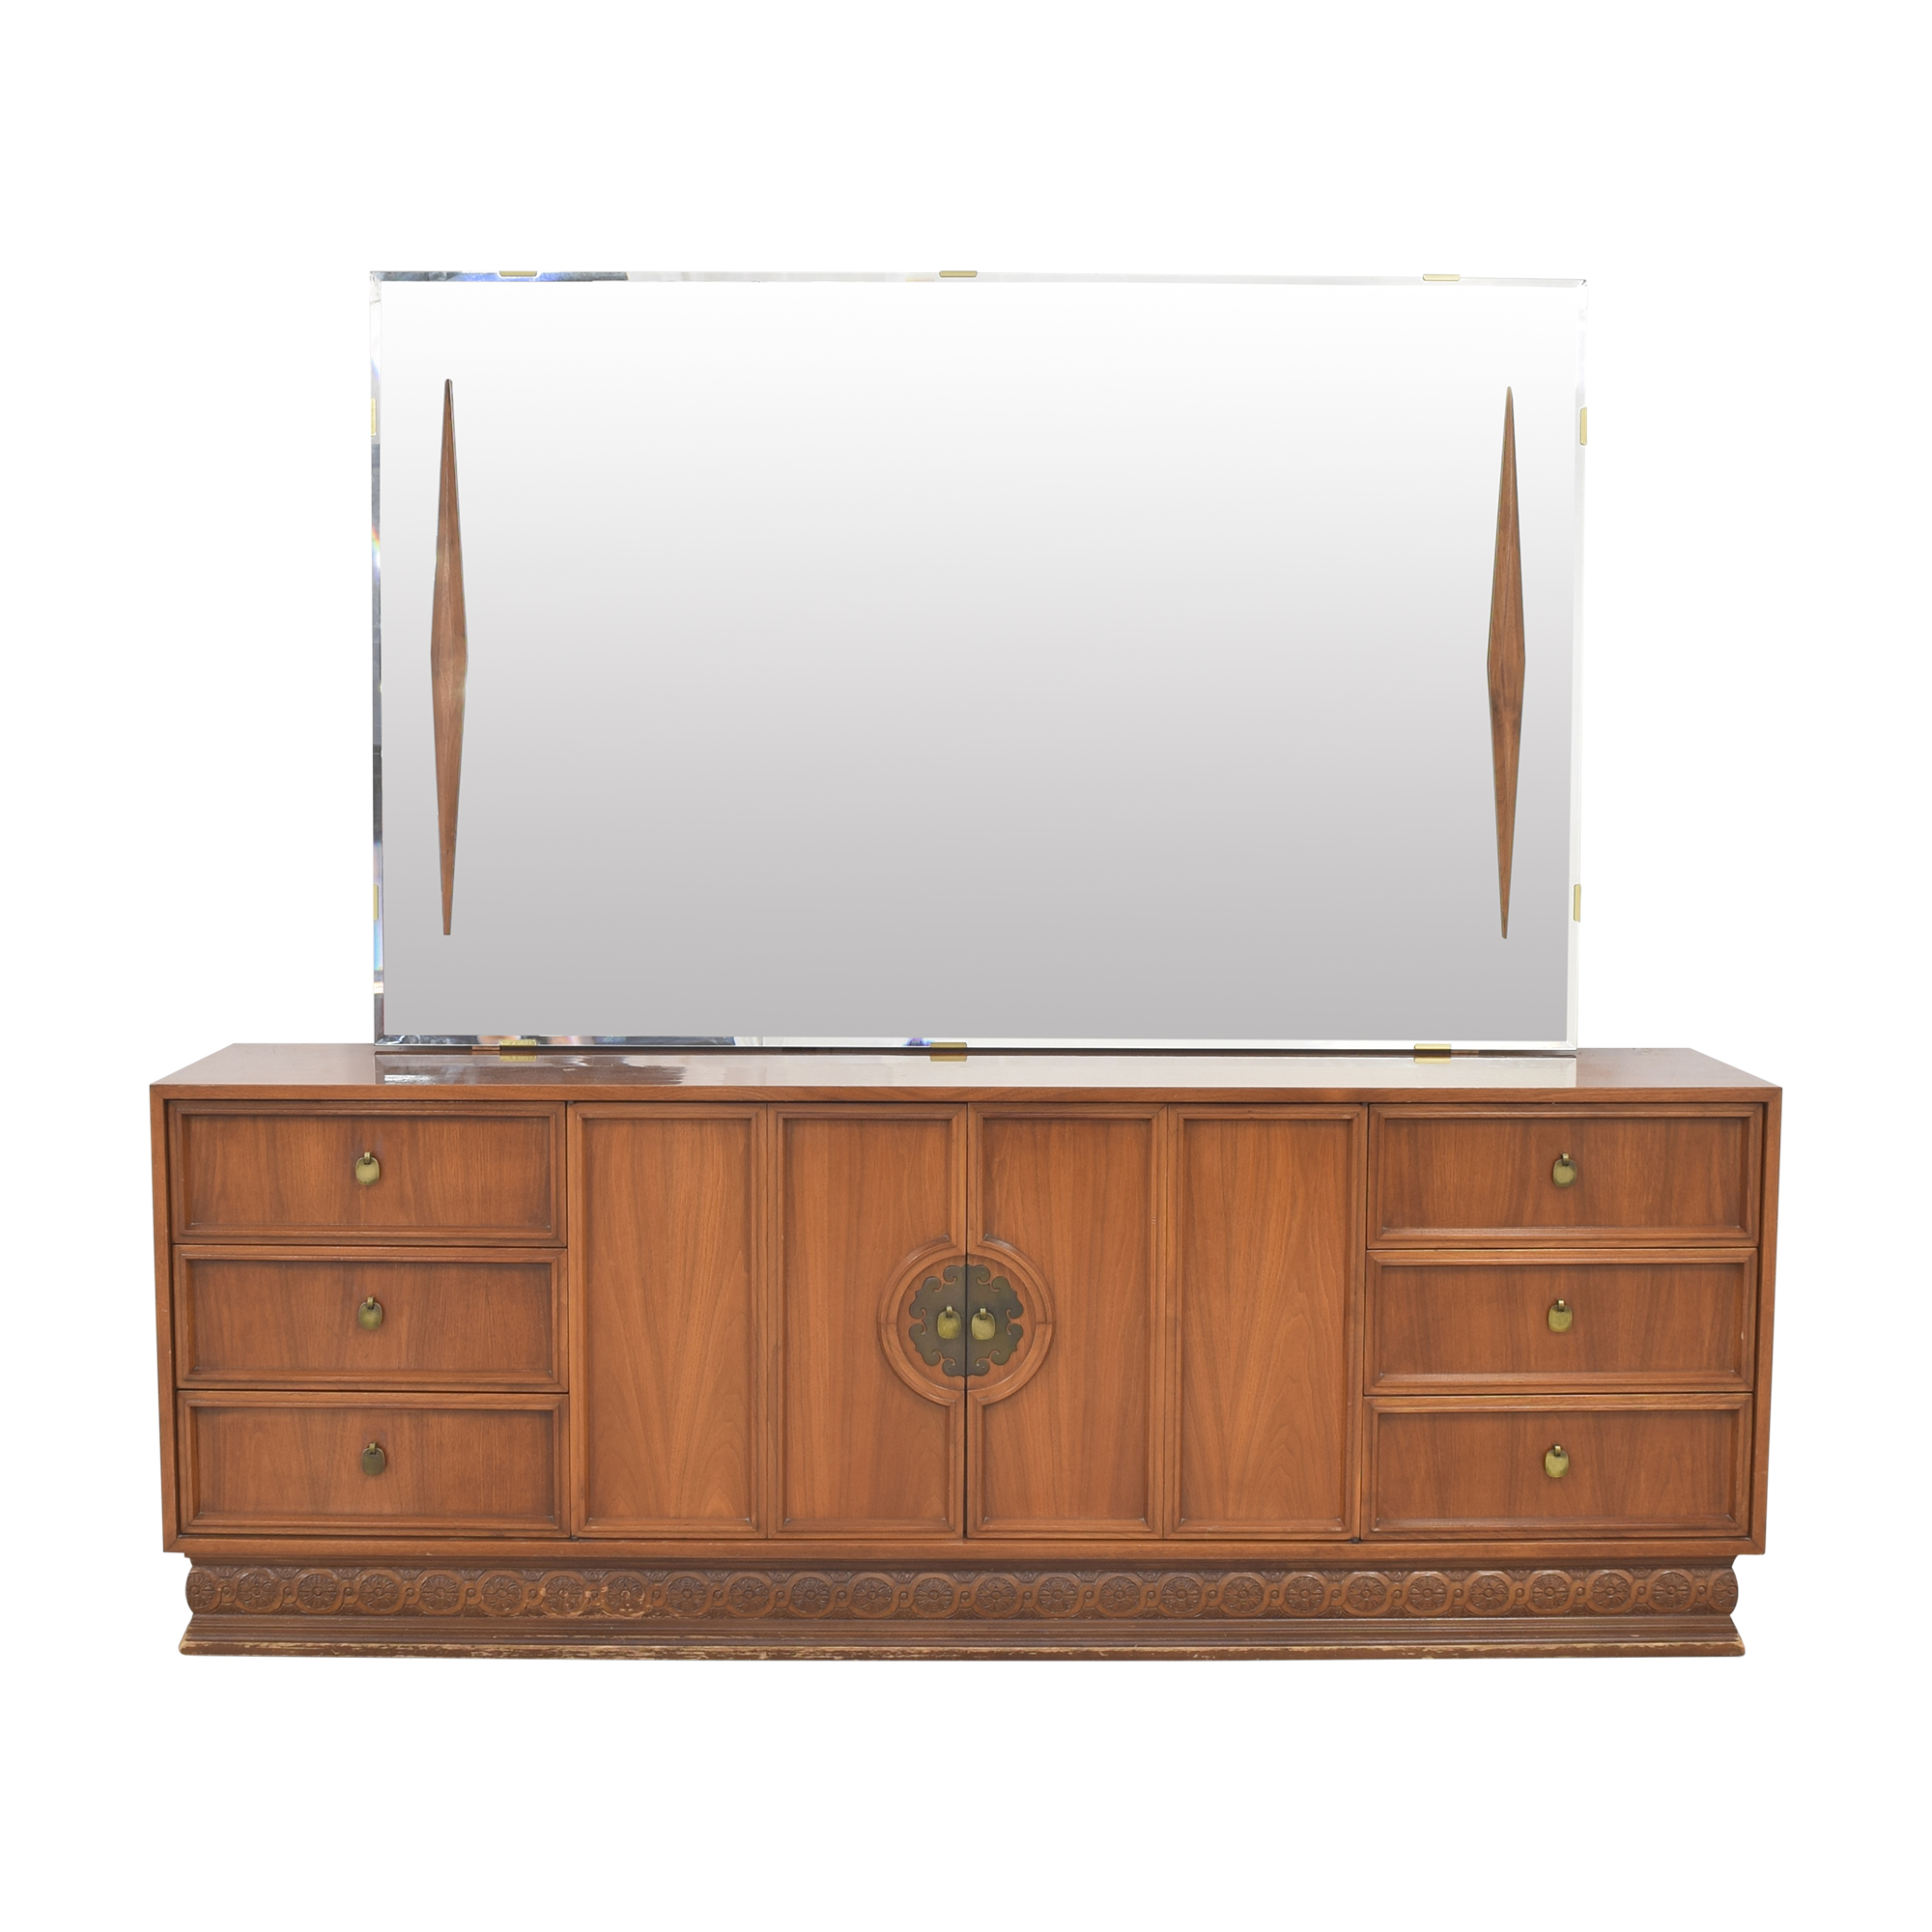 Nine Drawer Dresser with Mirror for sale